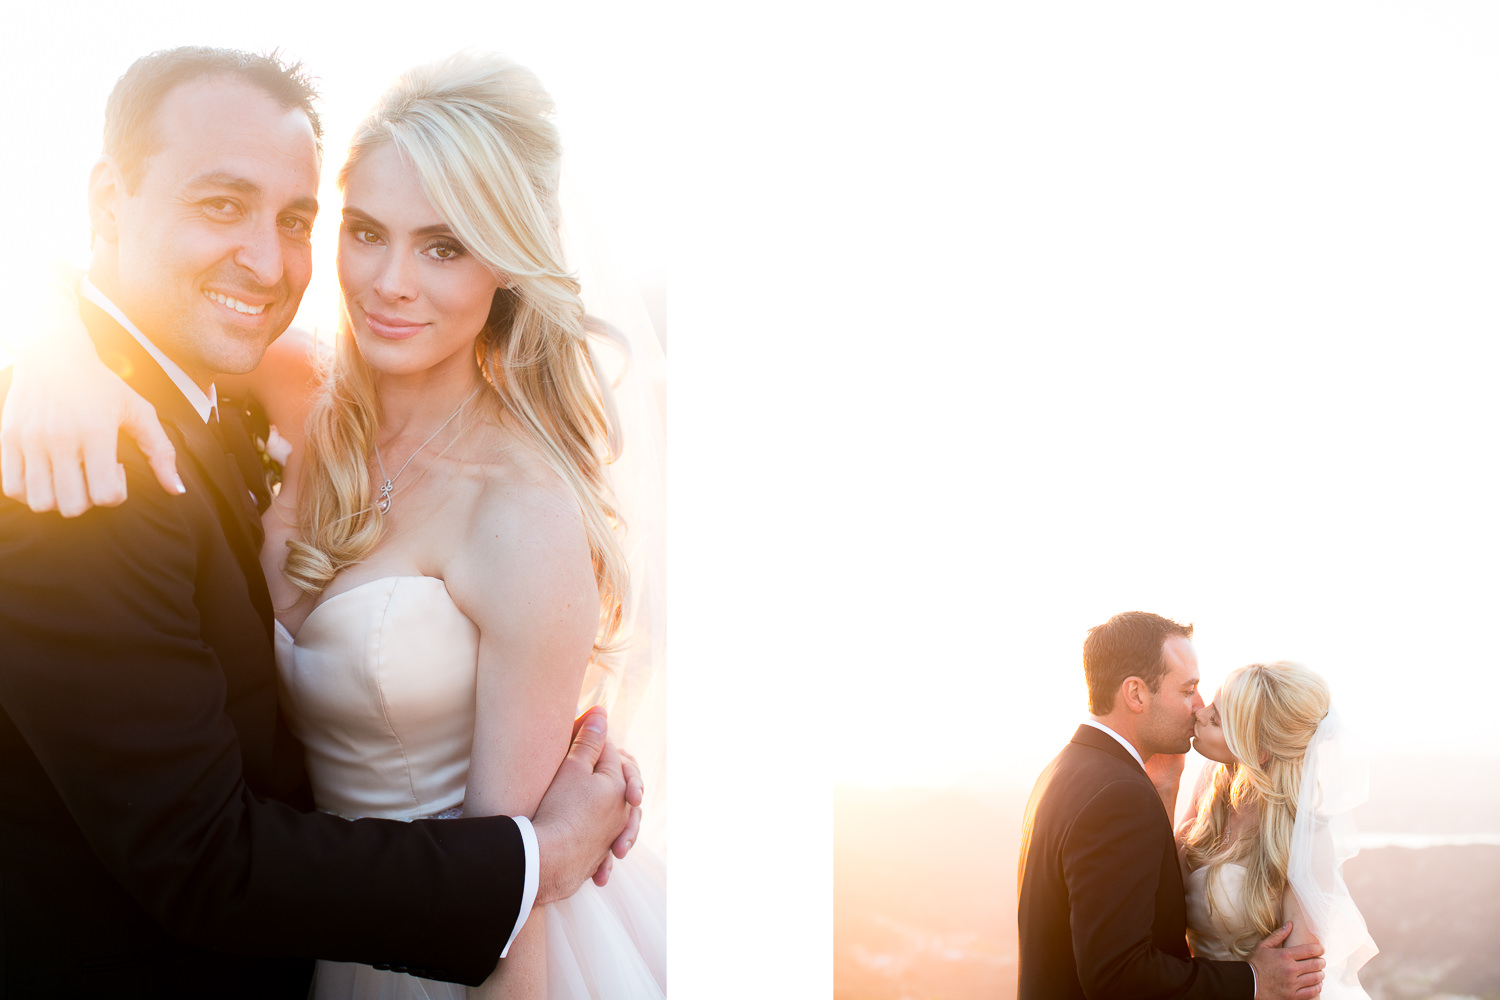 Malibu Rocky Oaks Photographer - Embracing in the sunlight